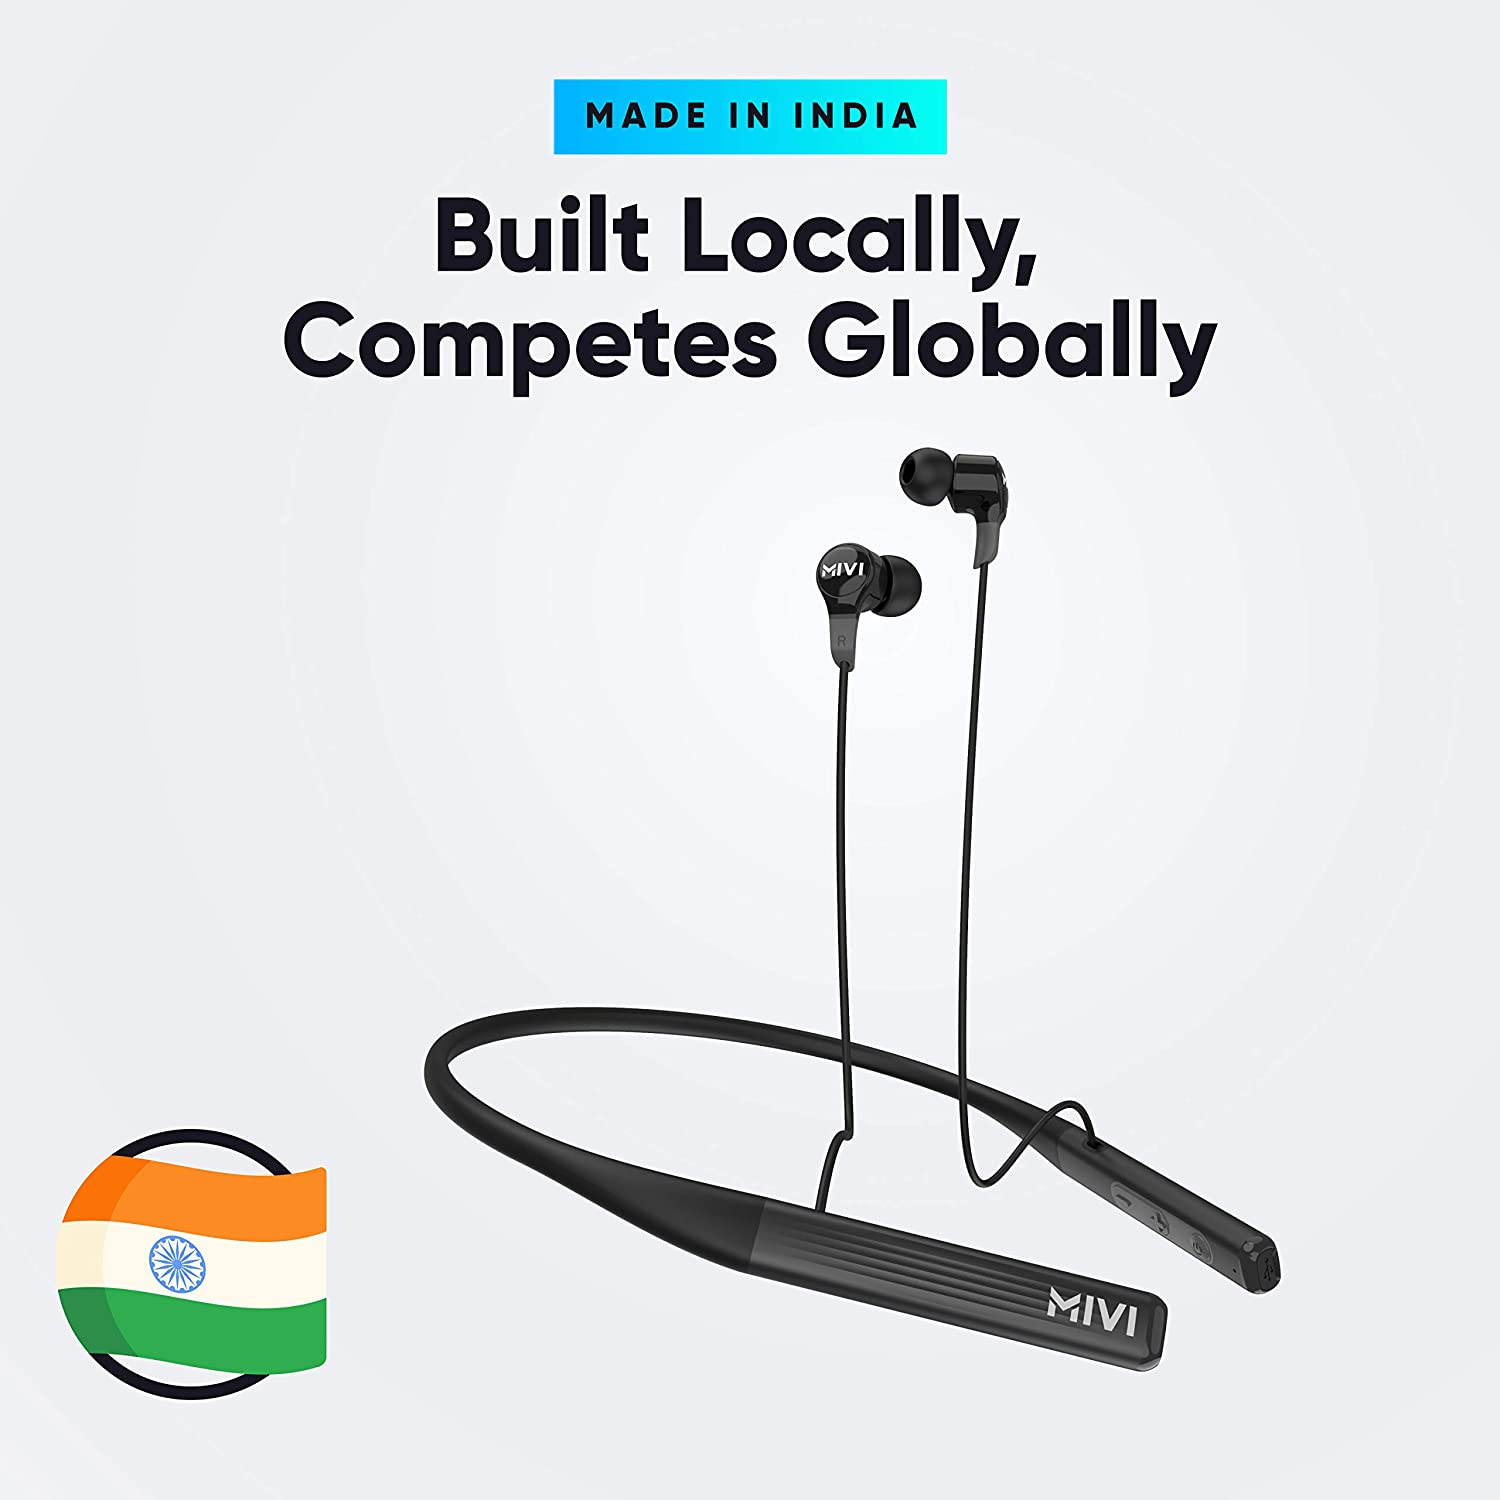 Mivi Collar 2B Bluetooth Earphones Best Features and Price